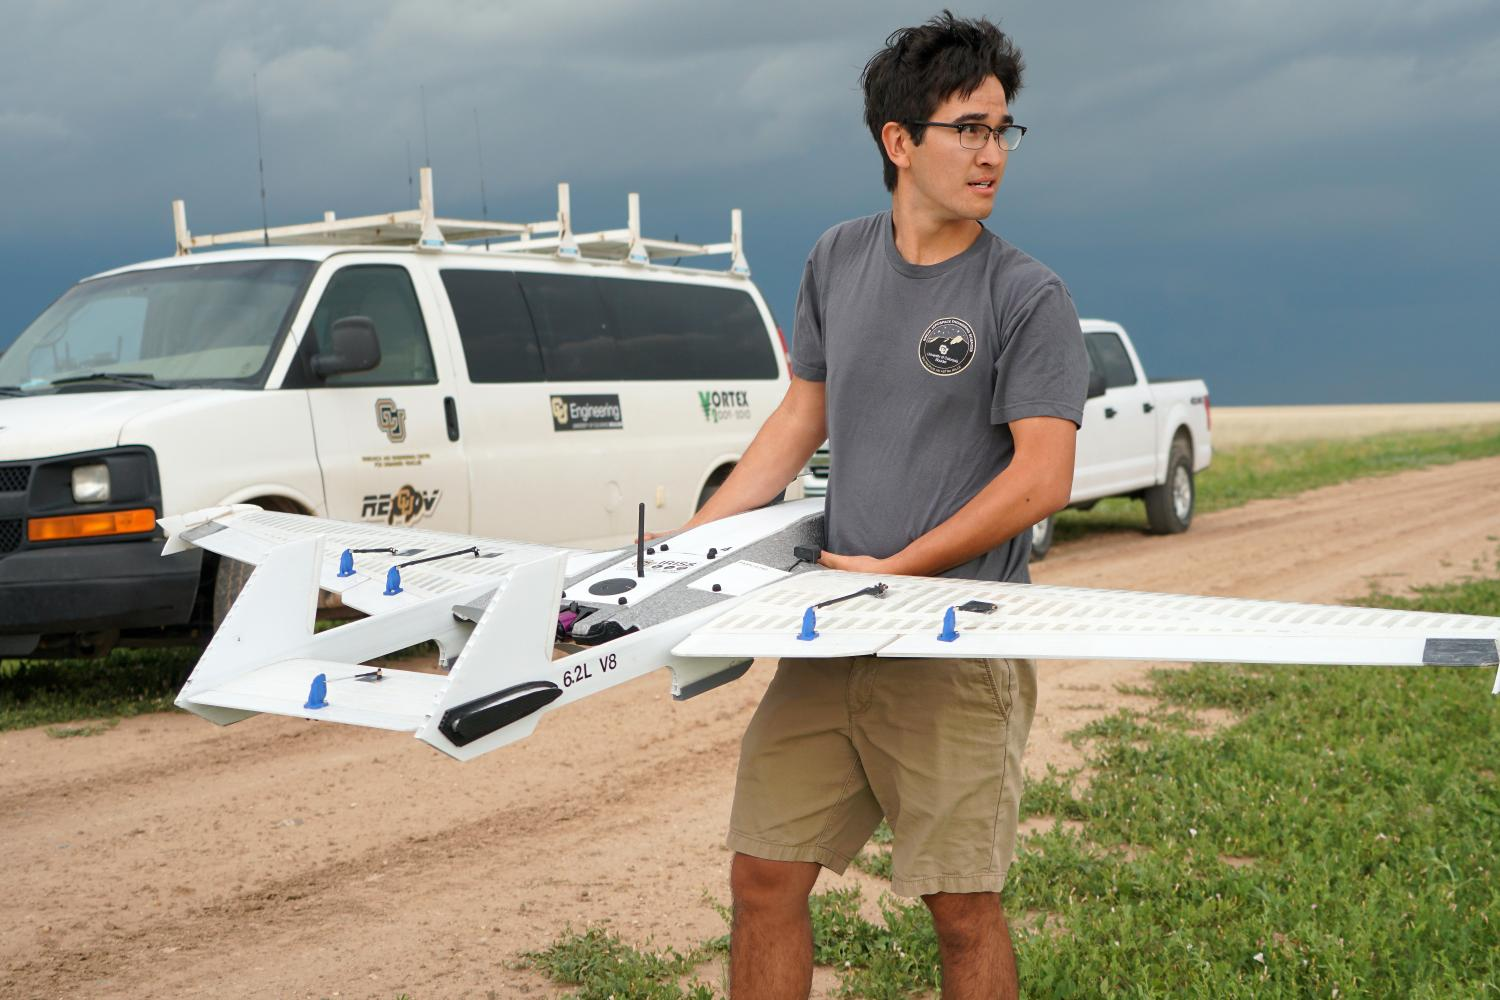 A student prepares to launch a drone